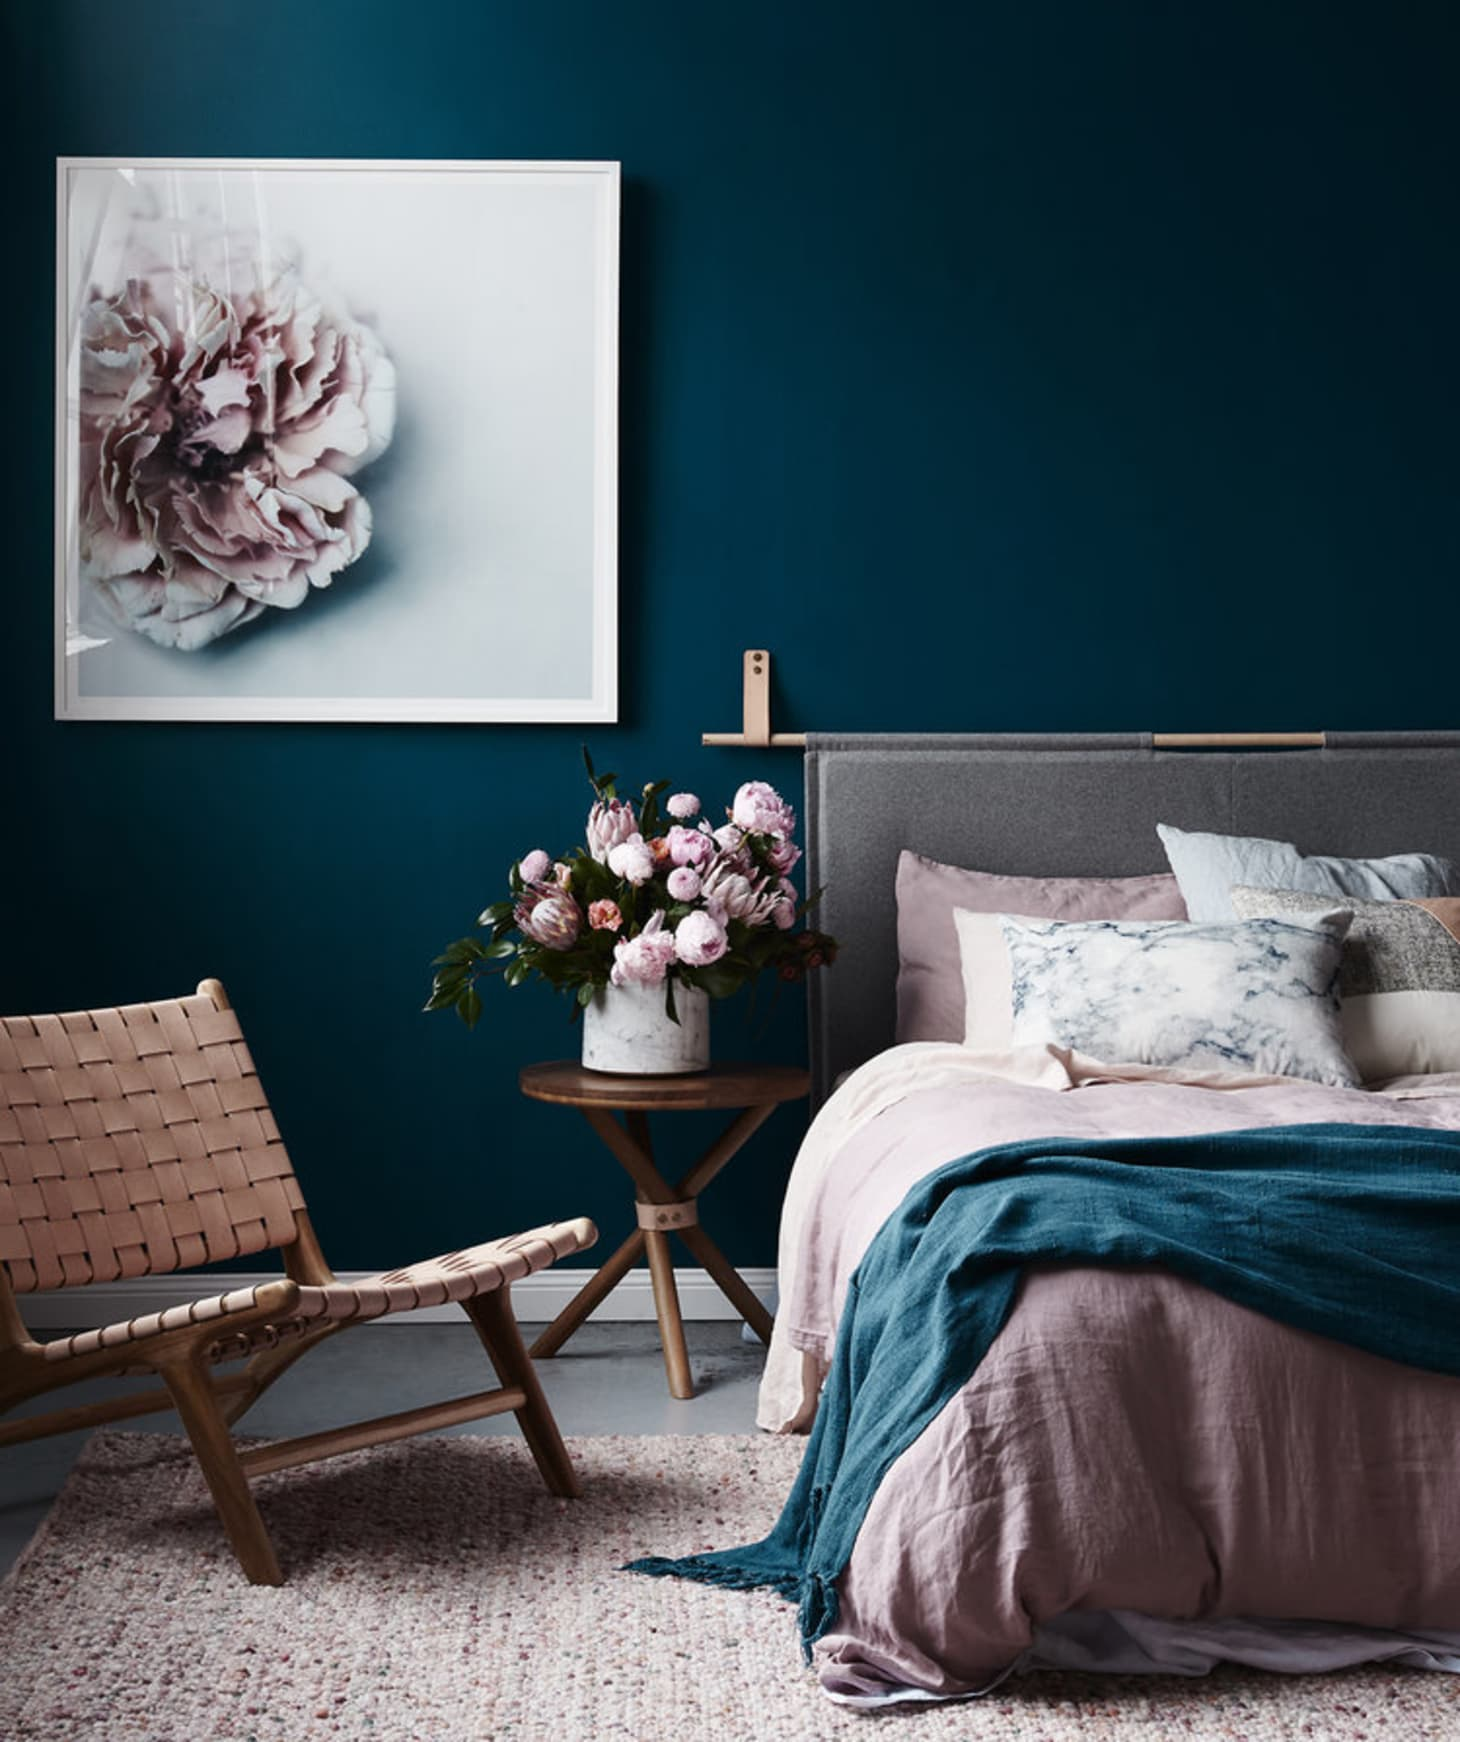 Navy Blue Bedroom Colors Dusty Pink Bedroom Accessories Small Bedroom Chairs Ikea Good Bedroom Color Schemes: Color Trend: How To Decorate With Blush Pink & Dark Blue